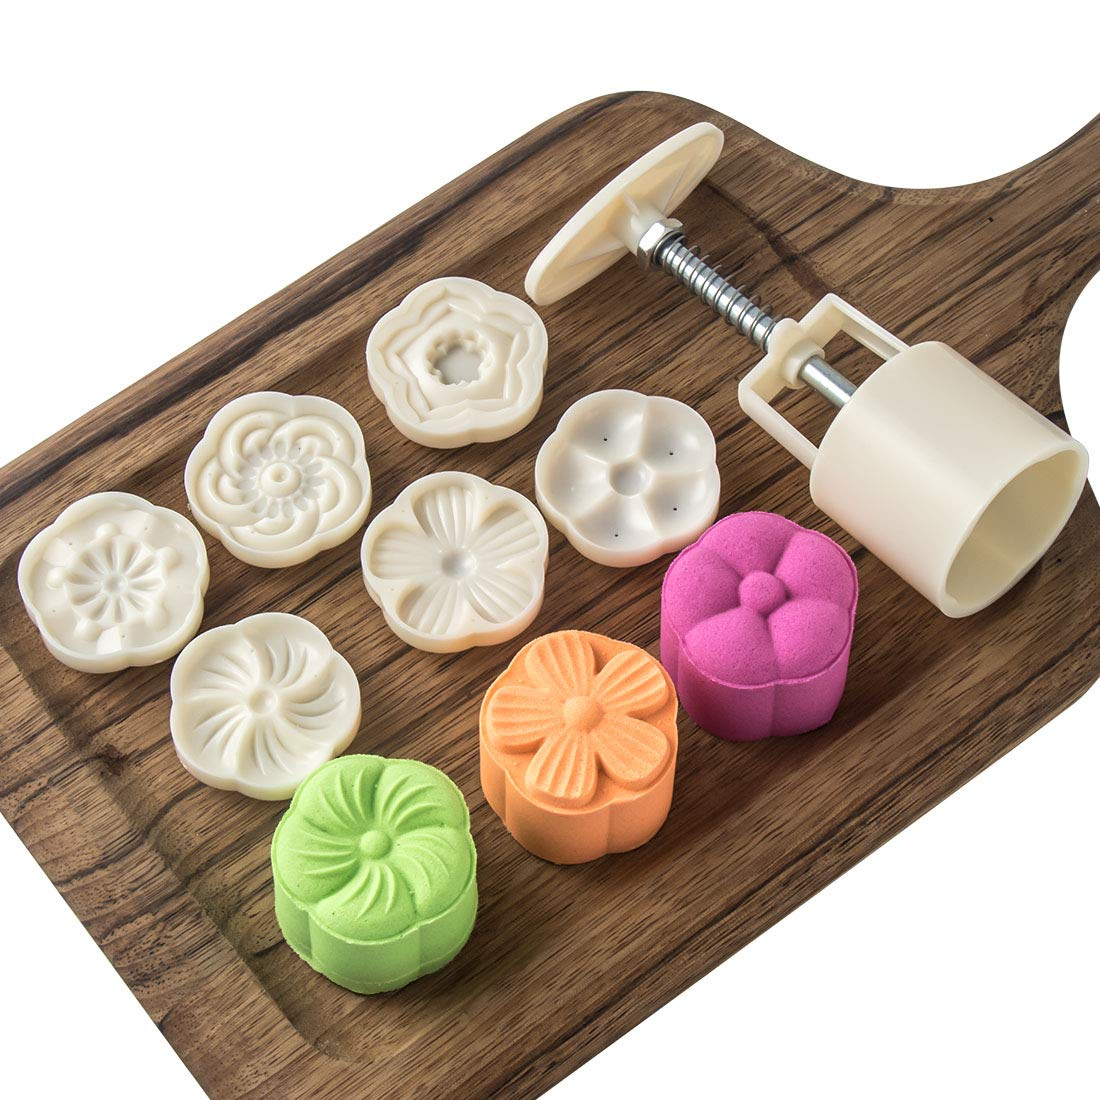 Moon Cake Mold with 6 Stamps - Mid Autumn Festival DIY Decoration Press 50g, Cookie Stamps, Cake Cutter Mold, Cookie Press … Cookie Press … DLT SYNCHKG117203